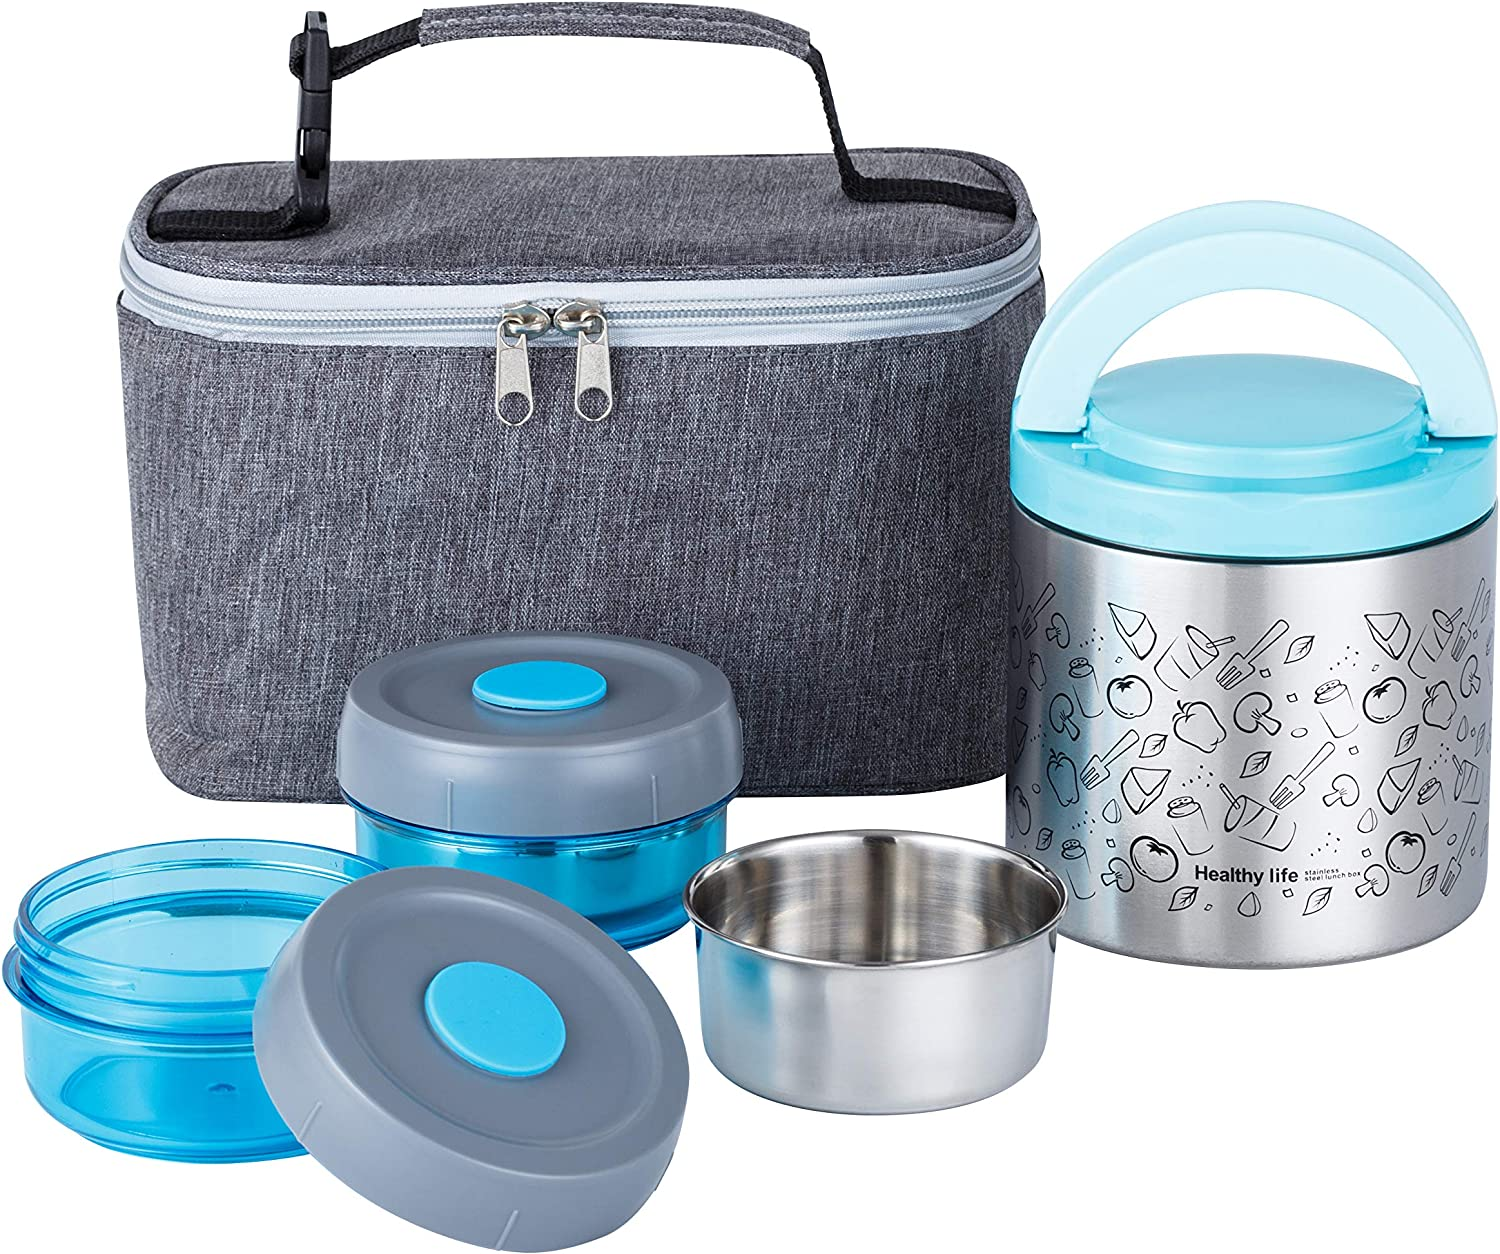 Lille Home Lunch Box Set, An Vacuum Insulated Lunch Box Keeping Food Warm for 4-6 Hours, Two BPA-Free Food Containers, A Lunch Bag (Blue)